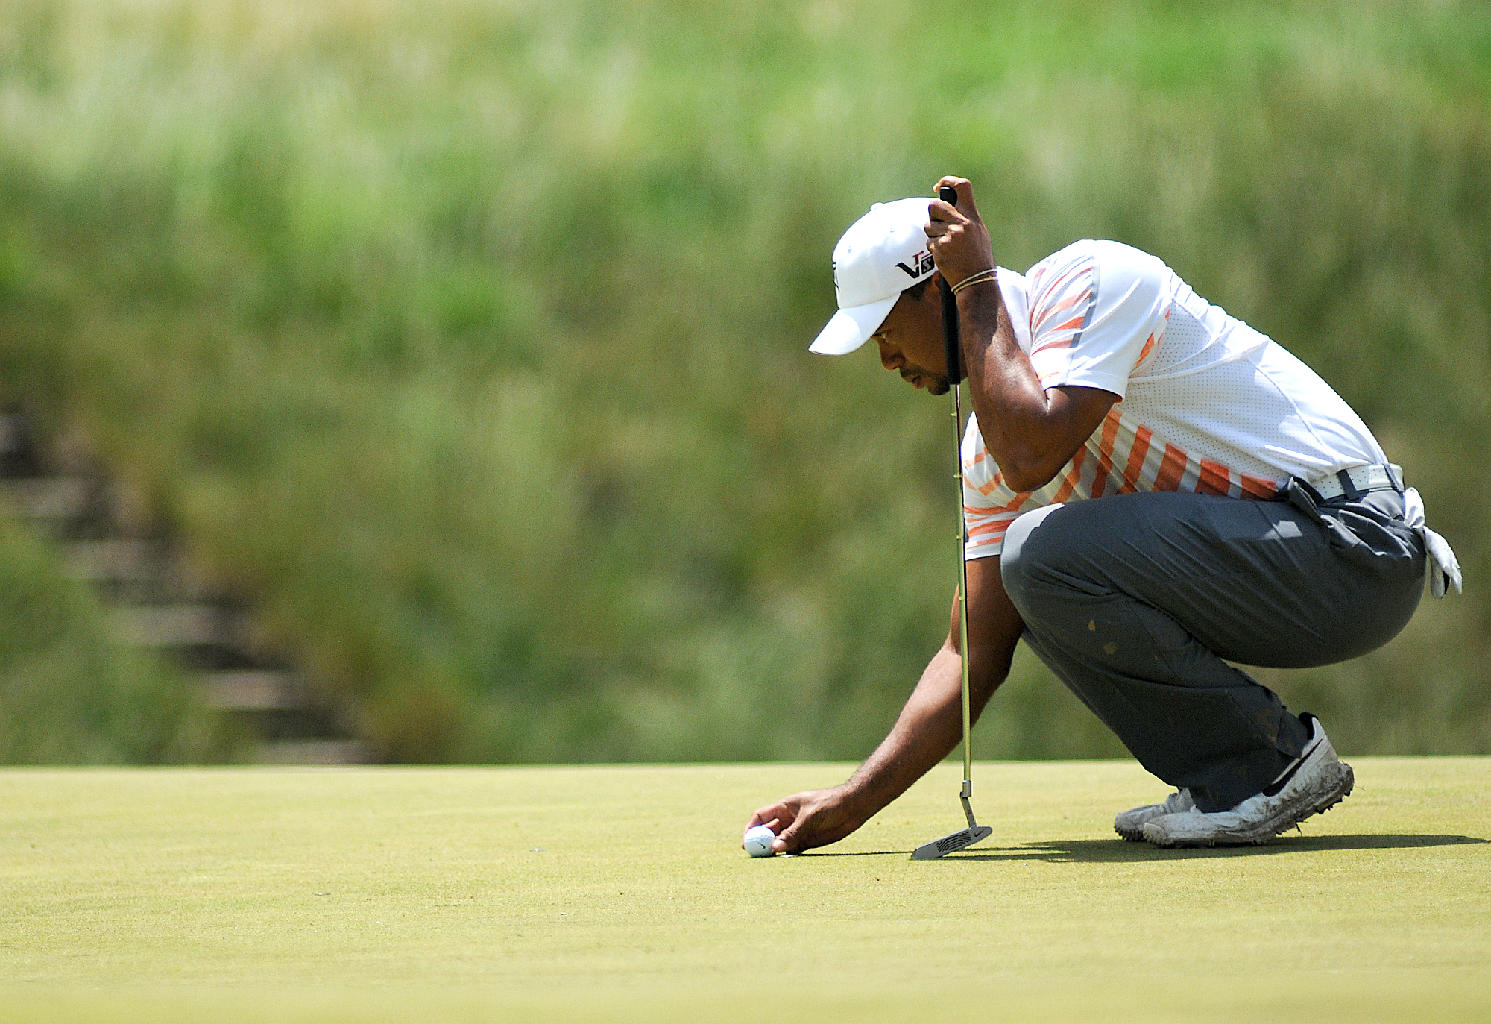 Tiger Woods prepares to put at Hole 17, a par of 3, during round 2 of the U.S. Open at Merion Golf Club on Friday, June 14, 2013.